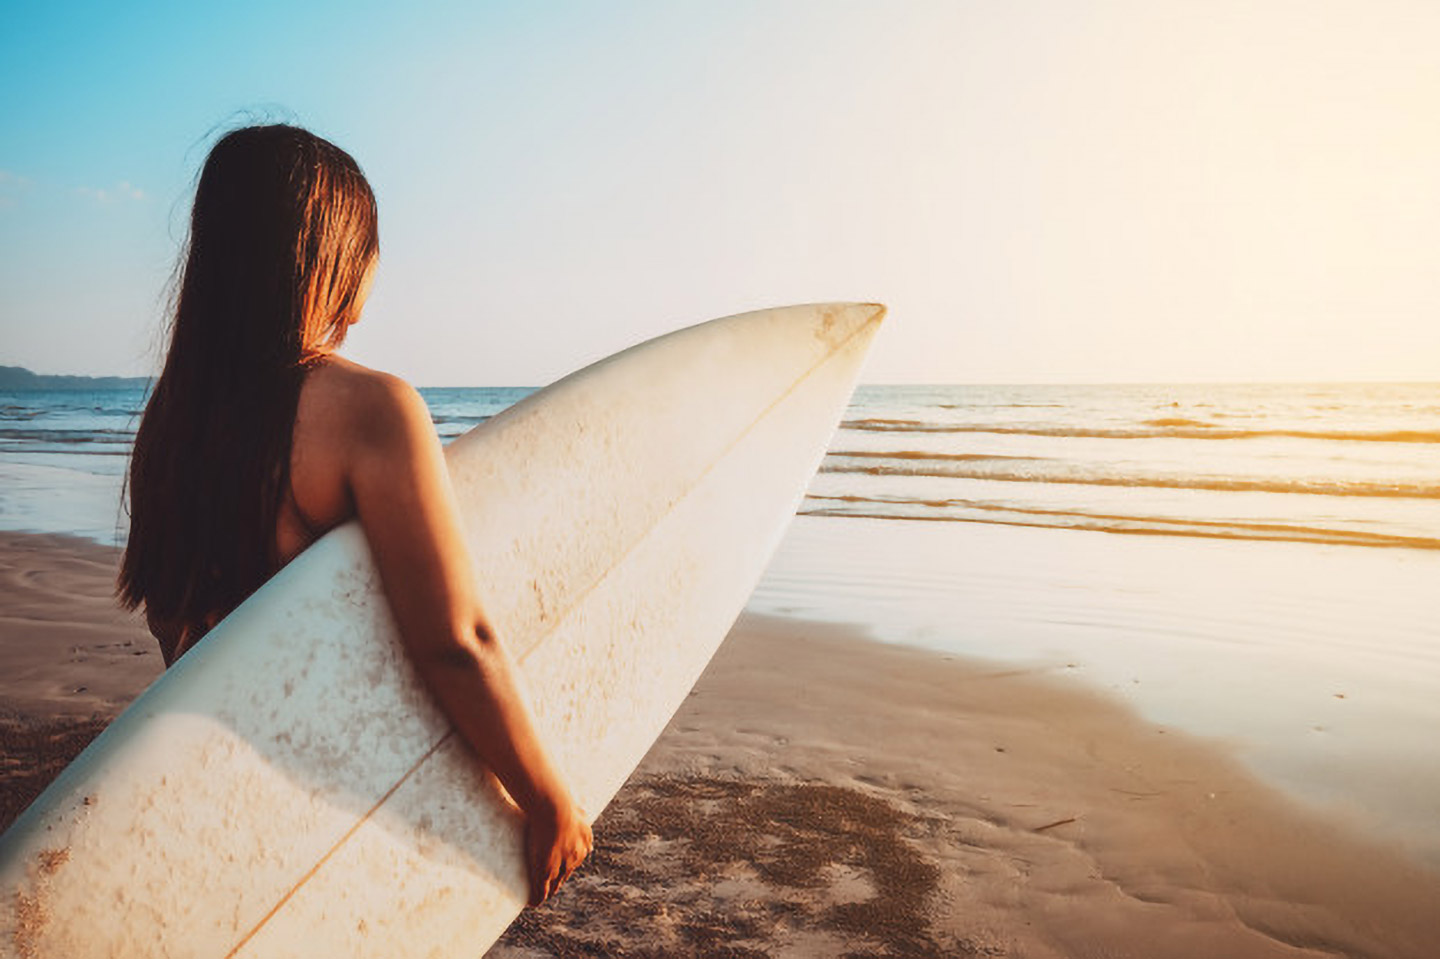 Image of a teen staring at the ocean holding a surfboard